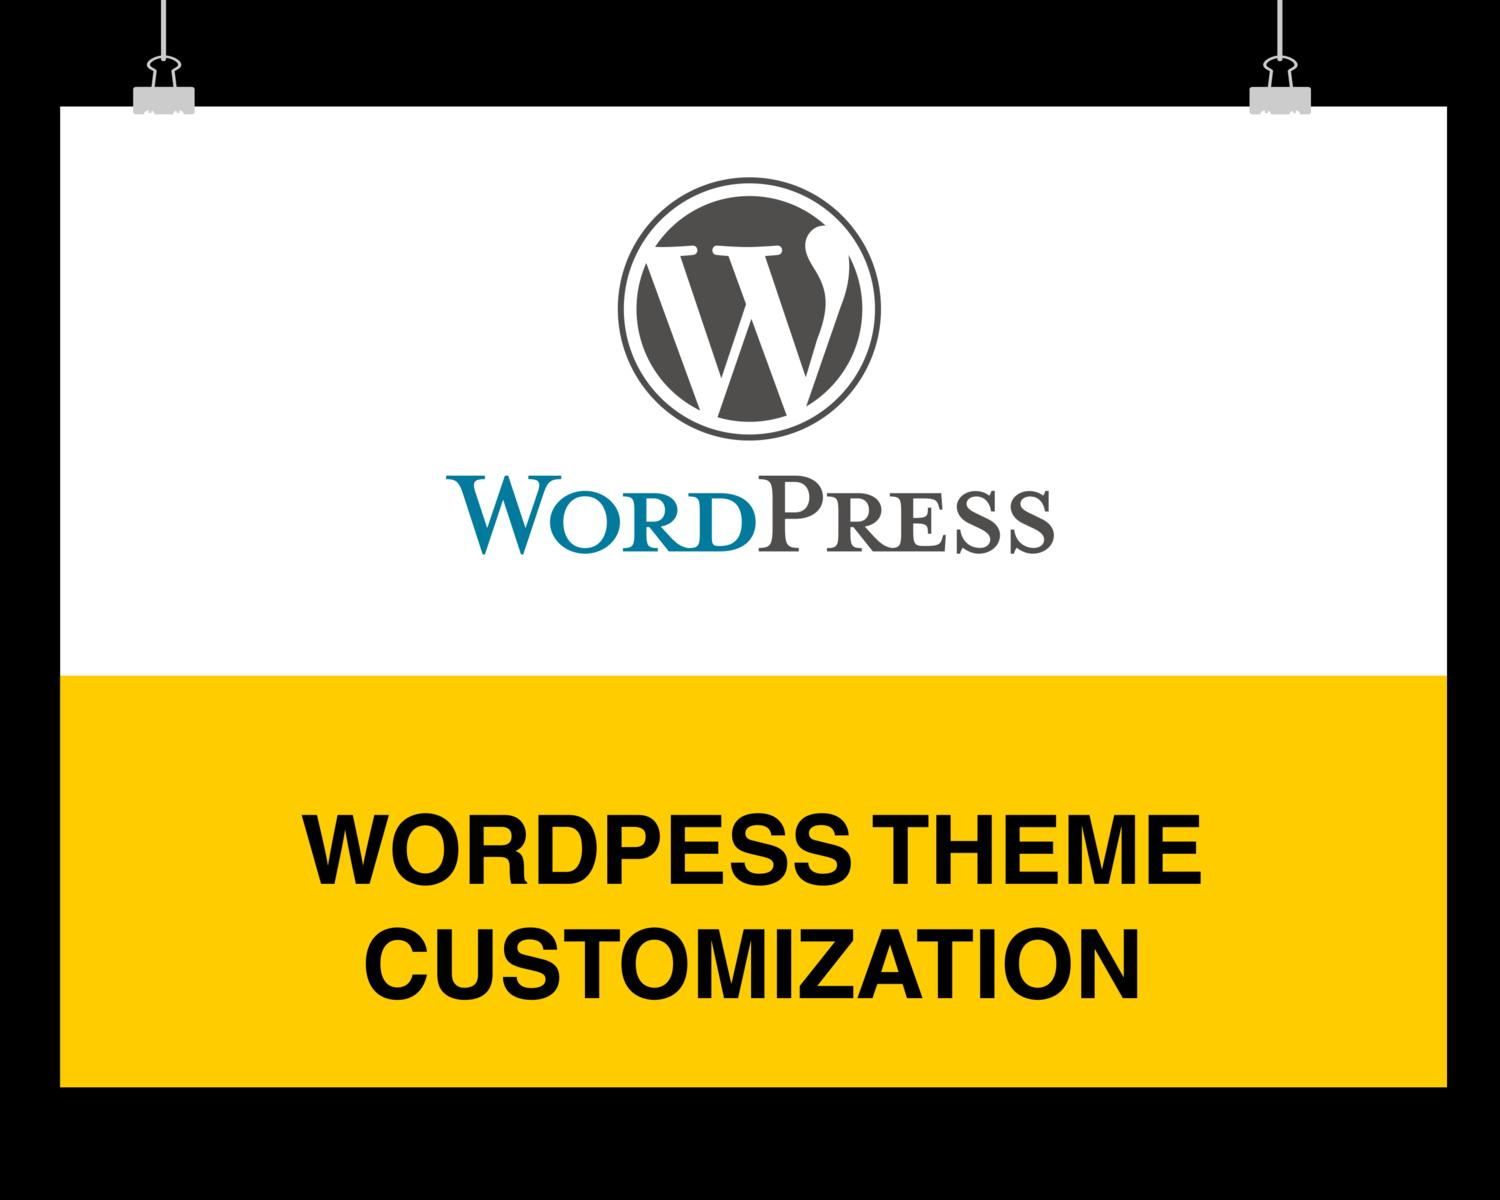 WordPress theme customization - Expert